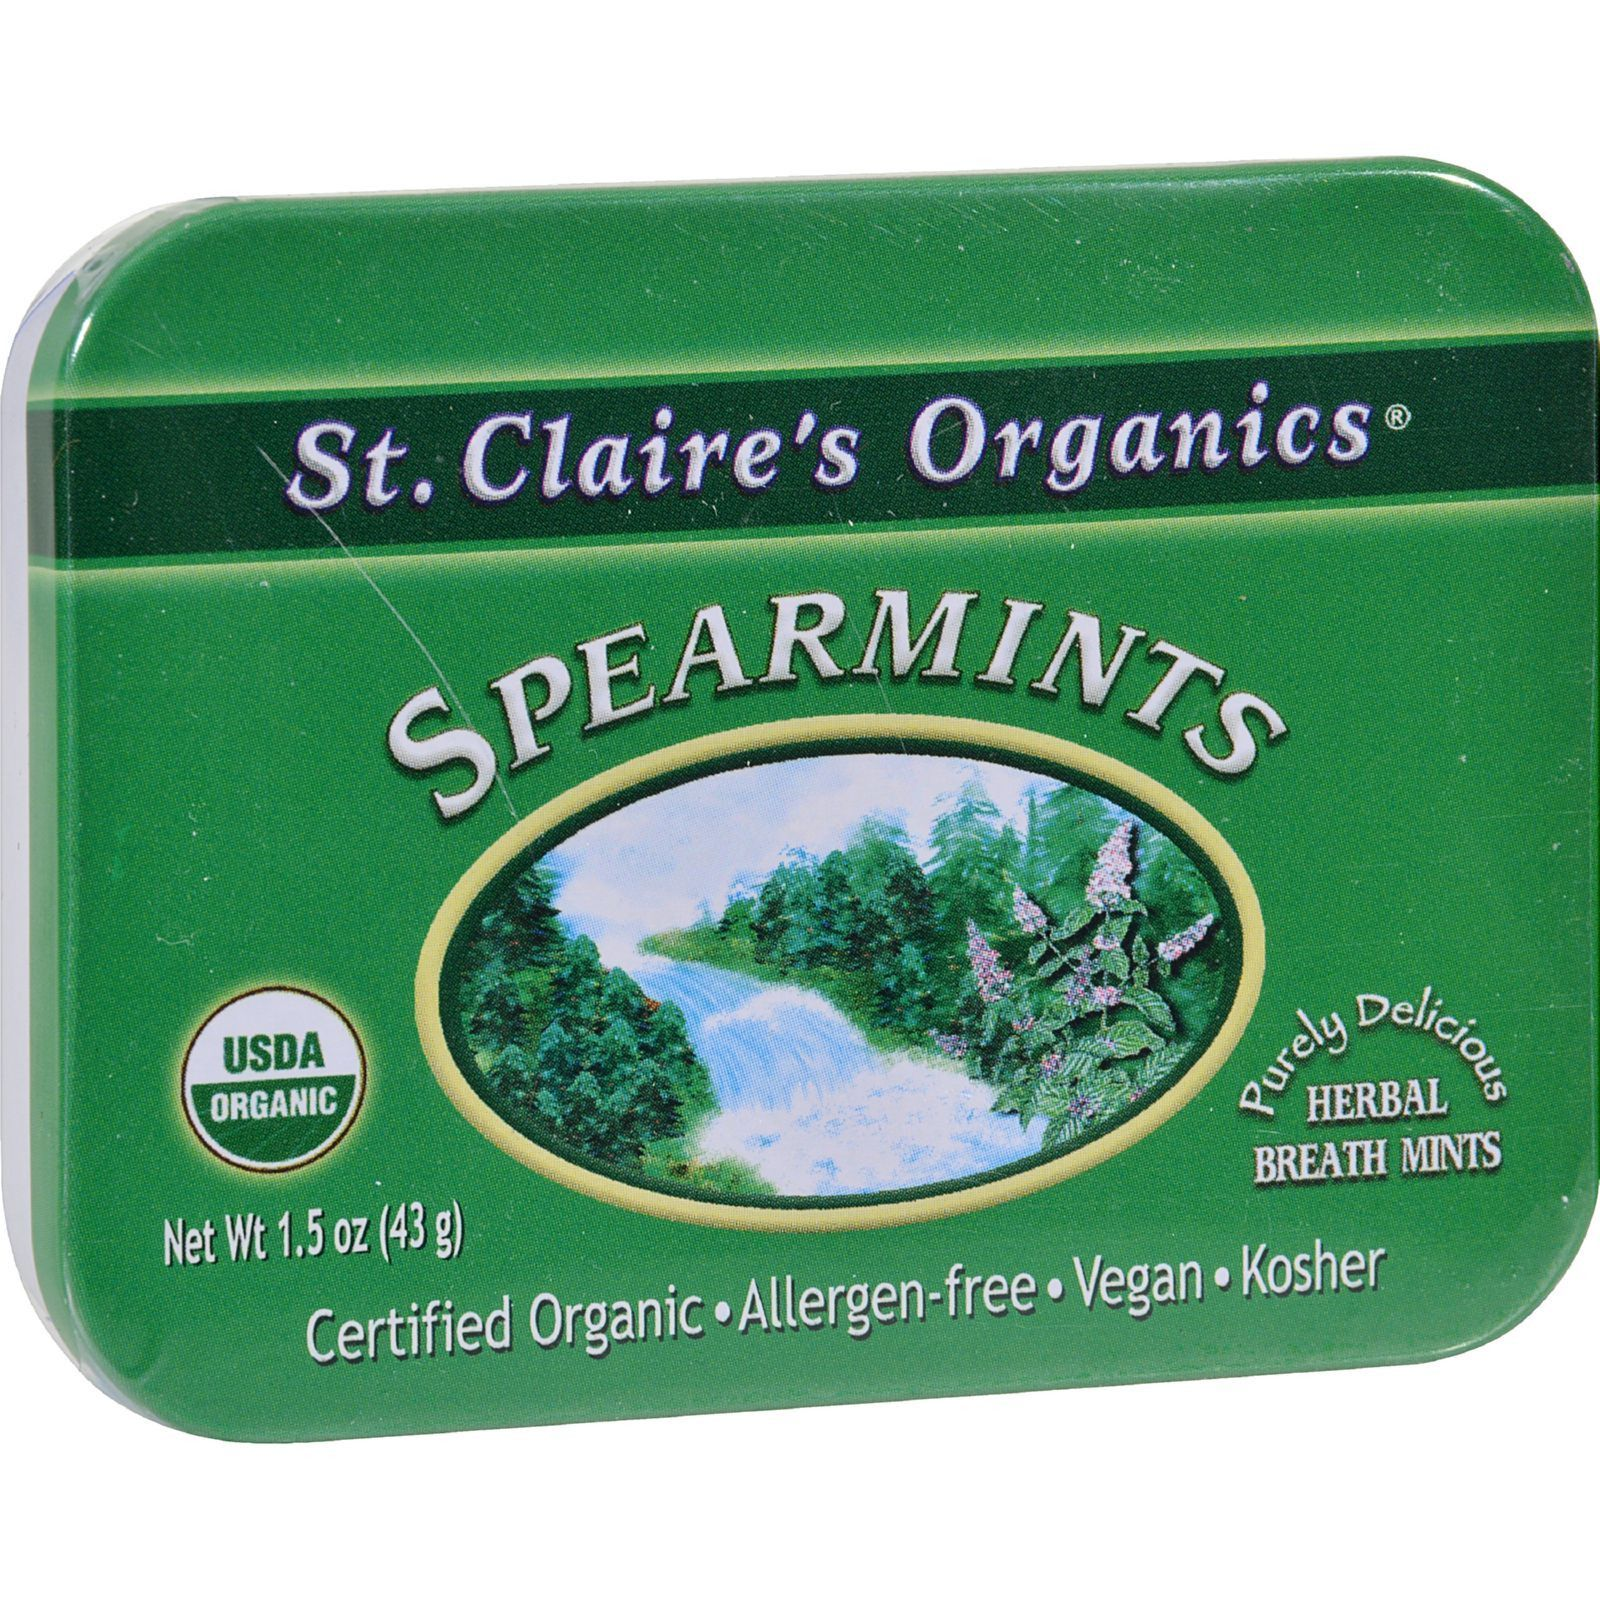 Food & Drink - St. Claire's Organic Spearmints - 43g